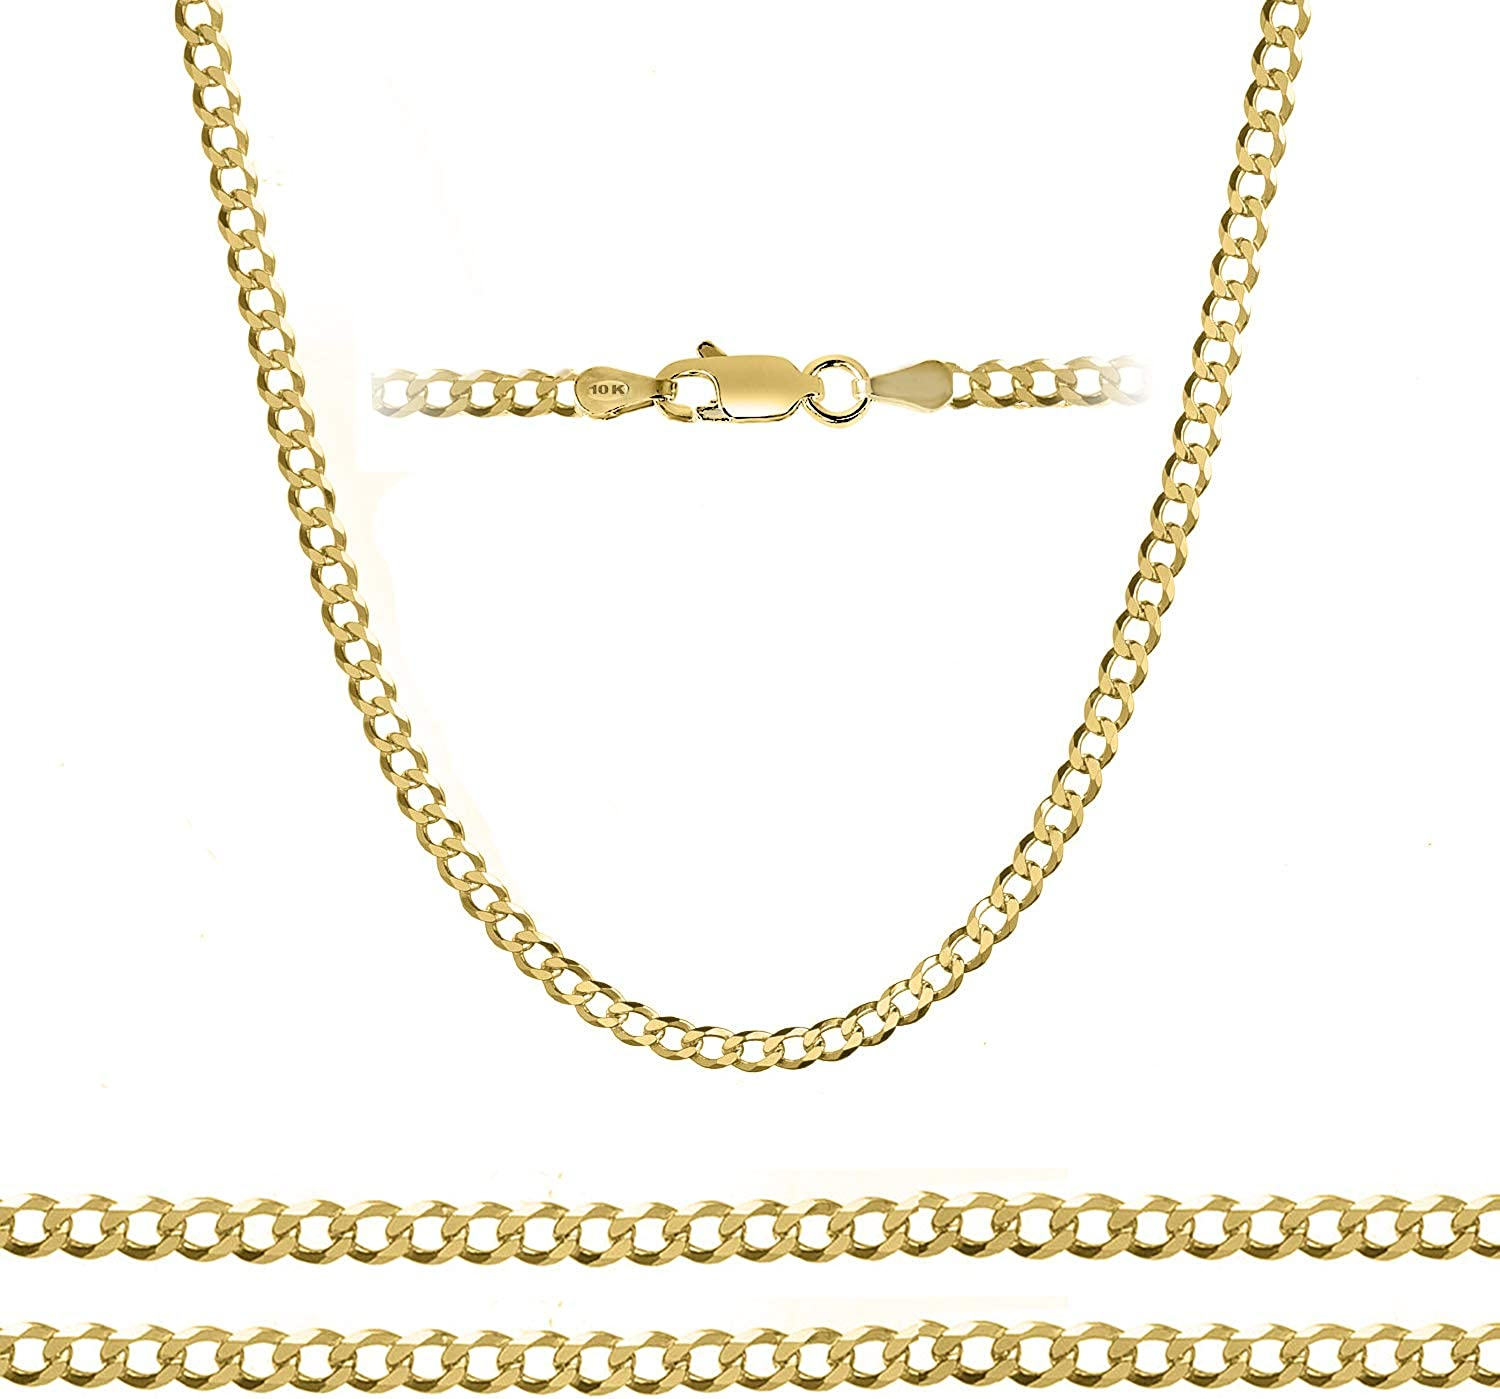 10K Yellow Gold 5mm Curb Chain Necklace and Bracelet, 7